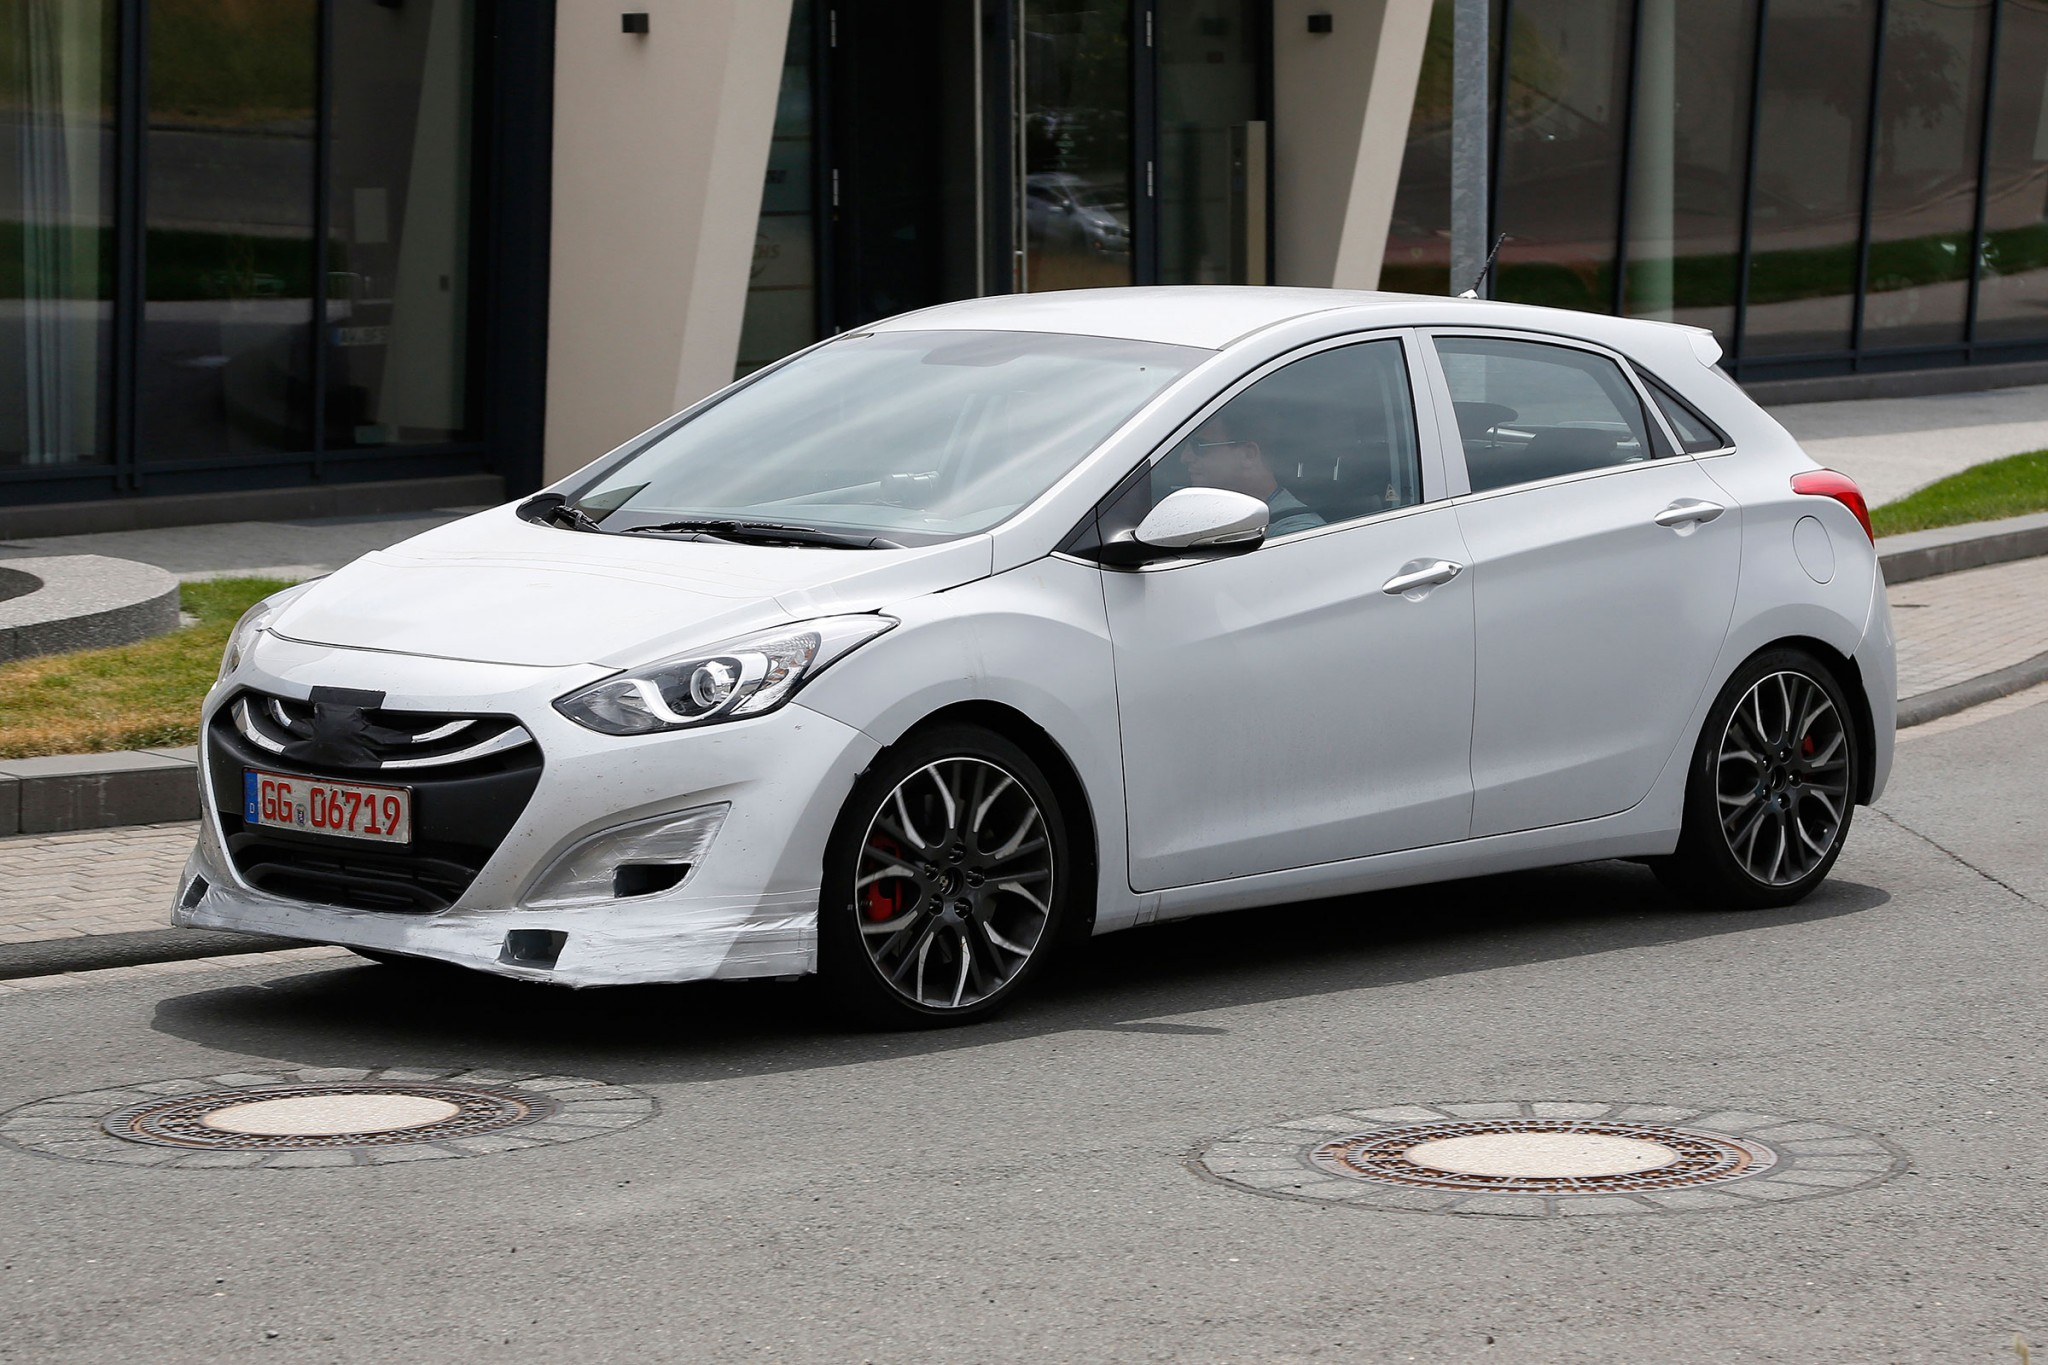 hyundai i30 hot hatch spied practical motoring. Black Bedroom Furniture Sets. Home Design Ideas